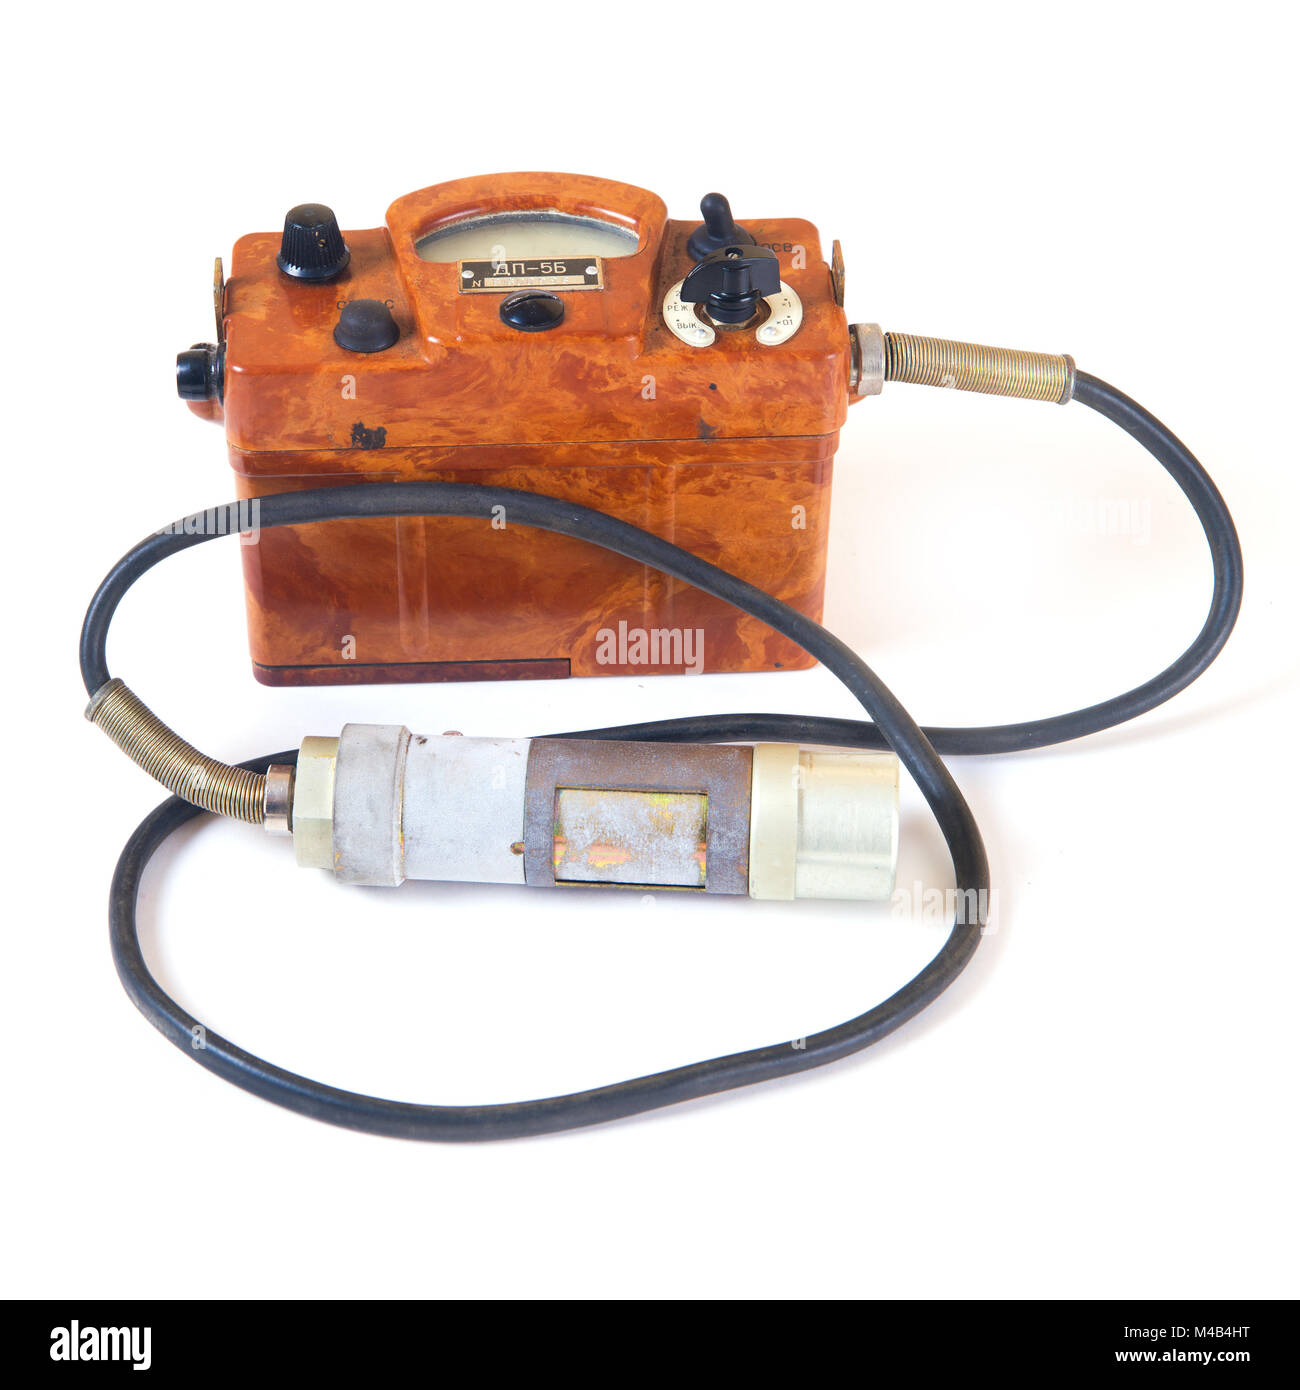 Geiger Counter Stock Photos Images Alamy Wiring Diagram Isolated On White Old Image